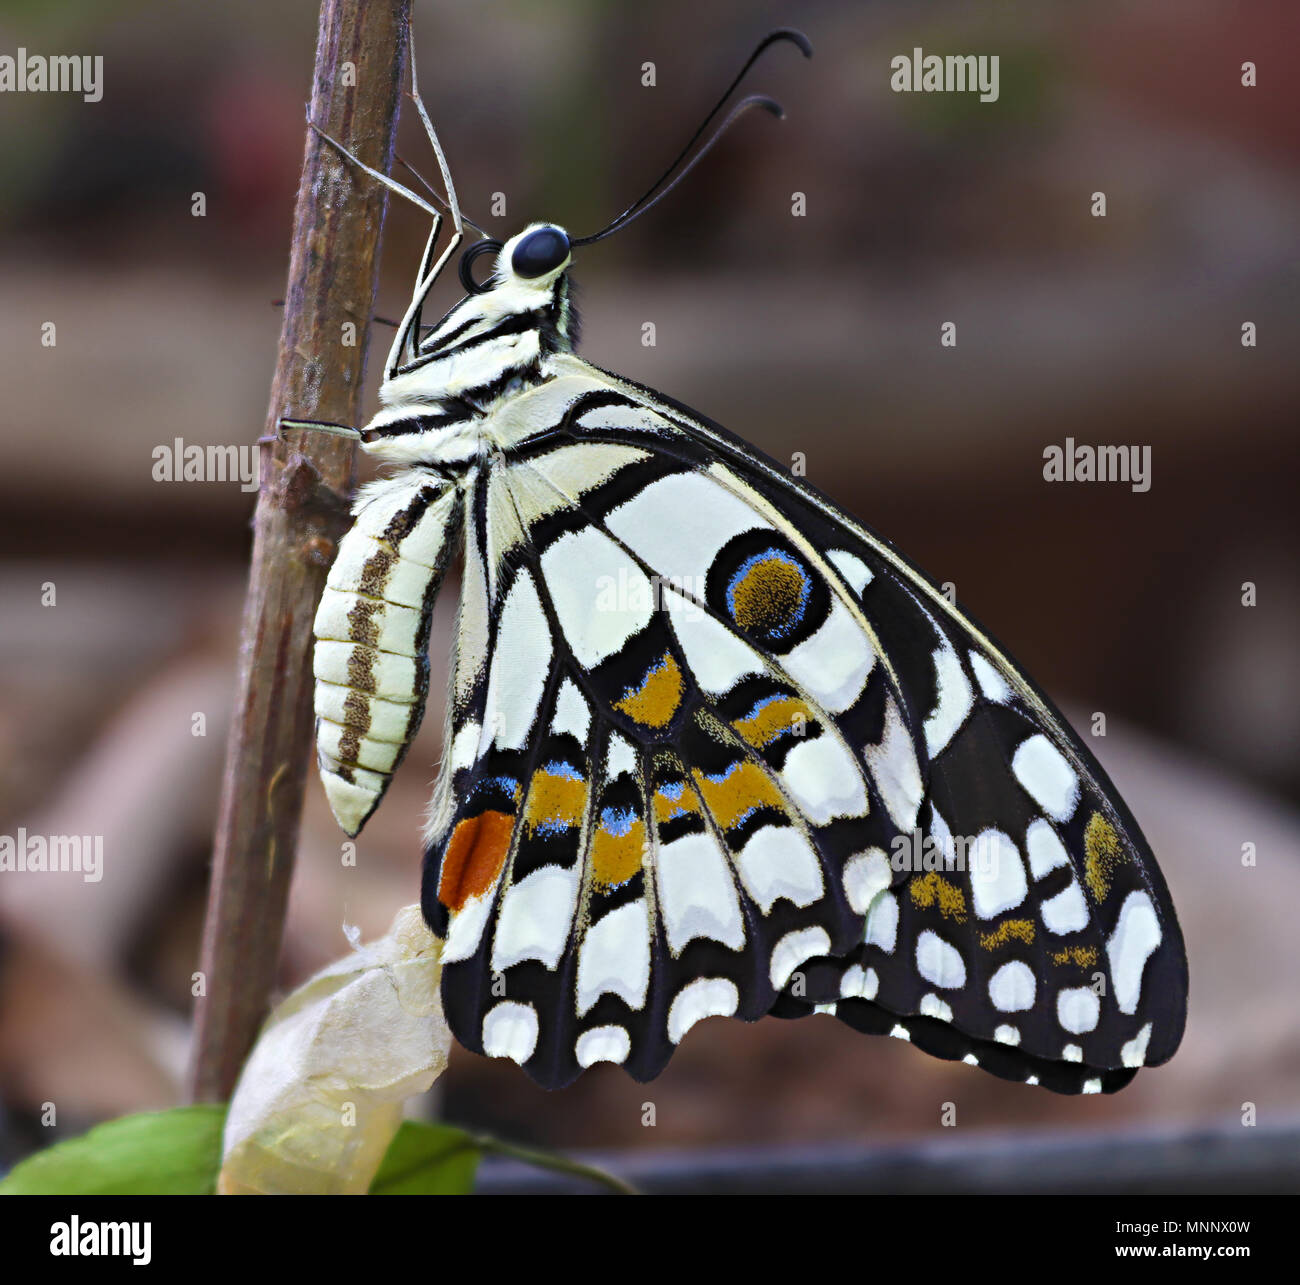 Freshly emerged Lime Butterfly ready to fly - Stock Image